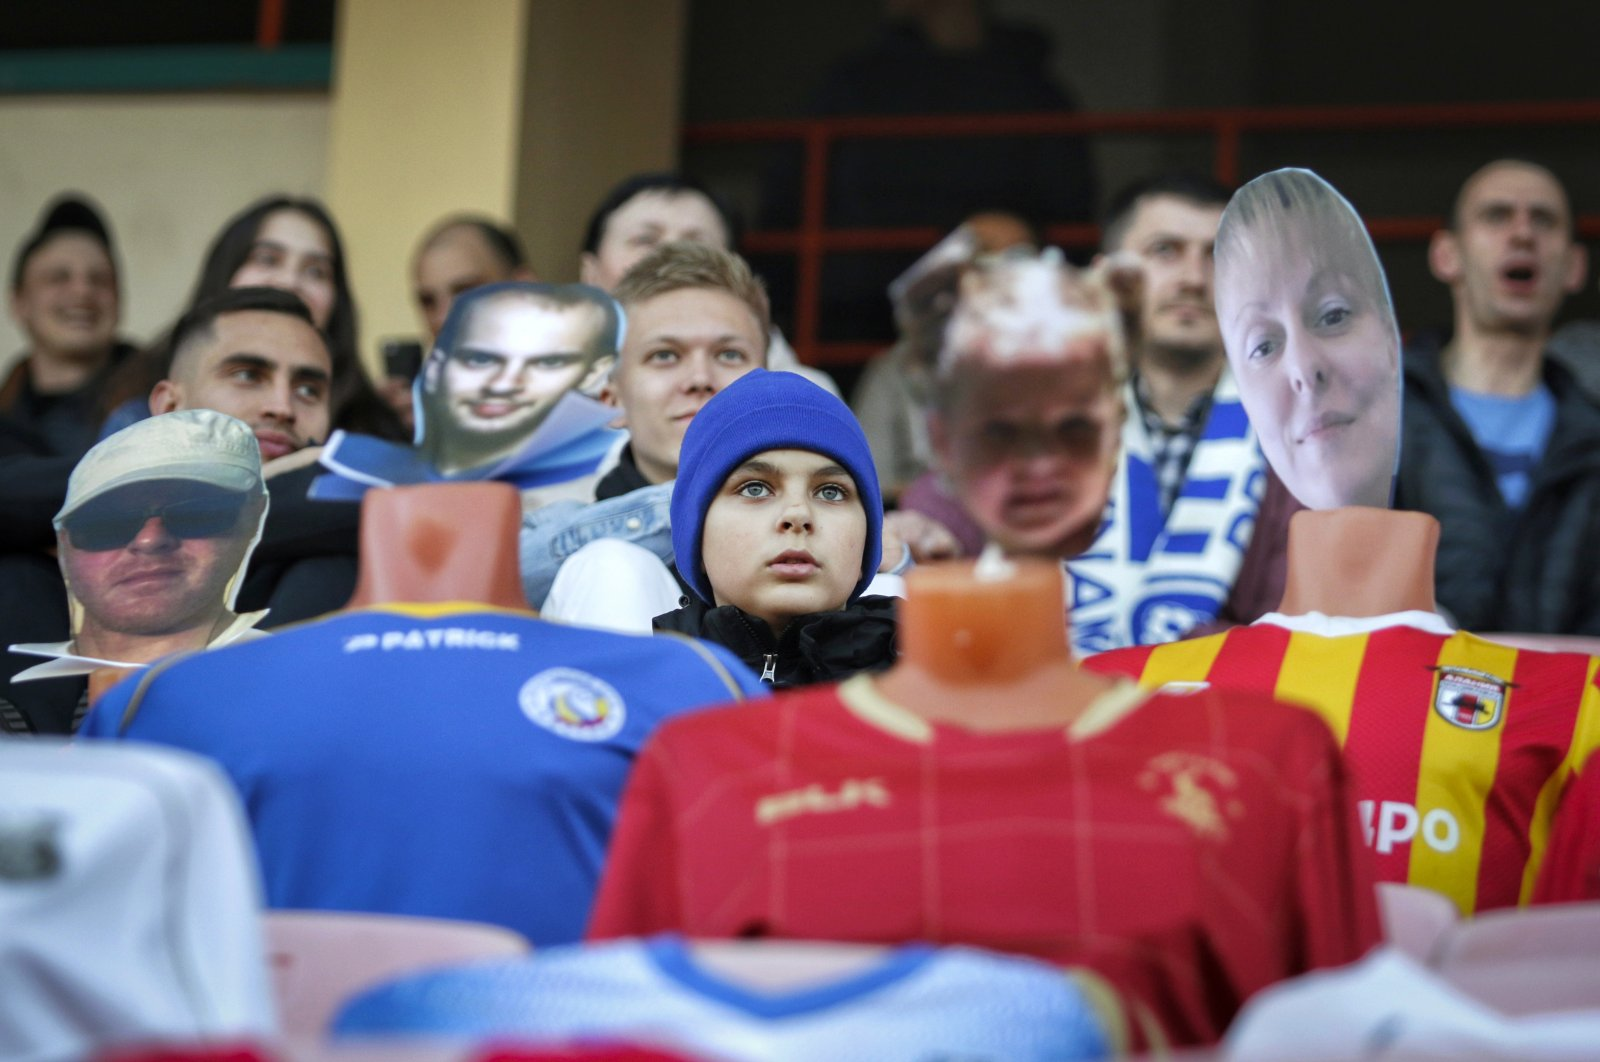 """Fans sit in the stands among mannequins in football uniforms with the faces of """"virtual fans"""" who bought tickets online during the match between FC Dynamo Brest and FC Shakhter Soligorsk in Brest, Belarus, April 8, 2020. (AP Photo)"""